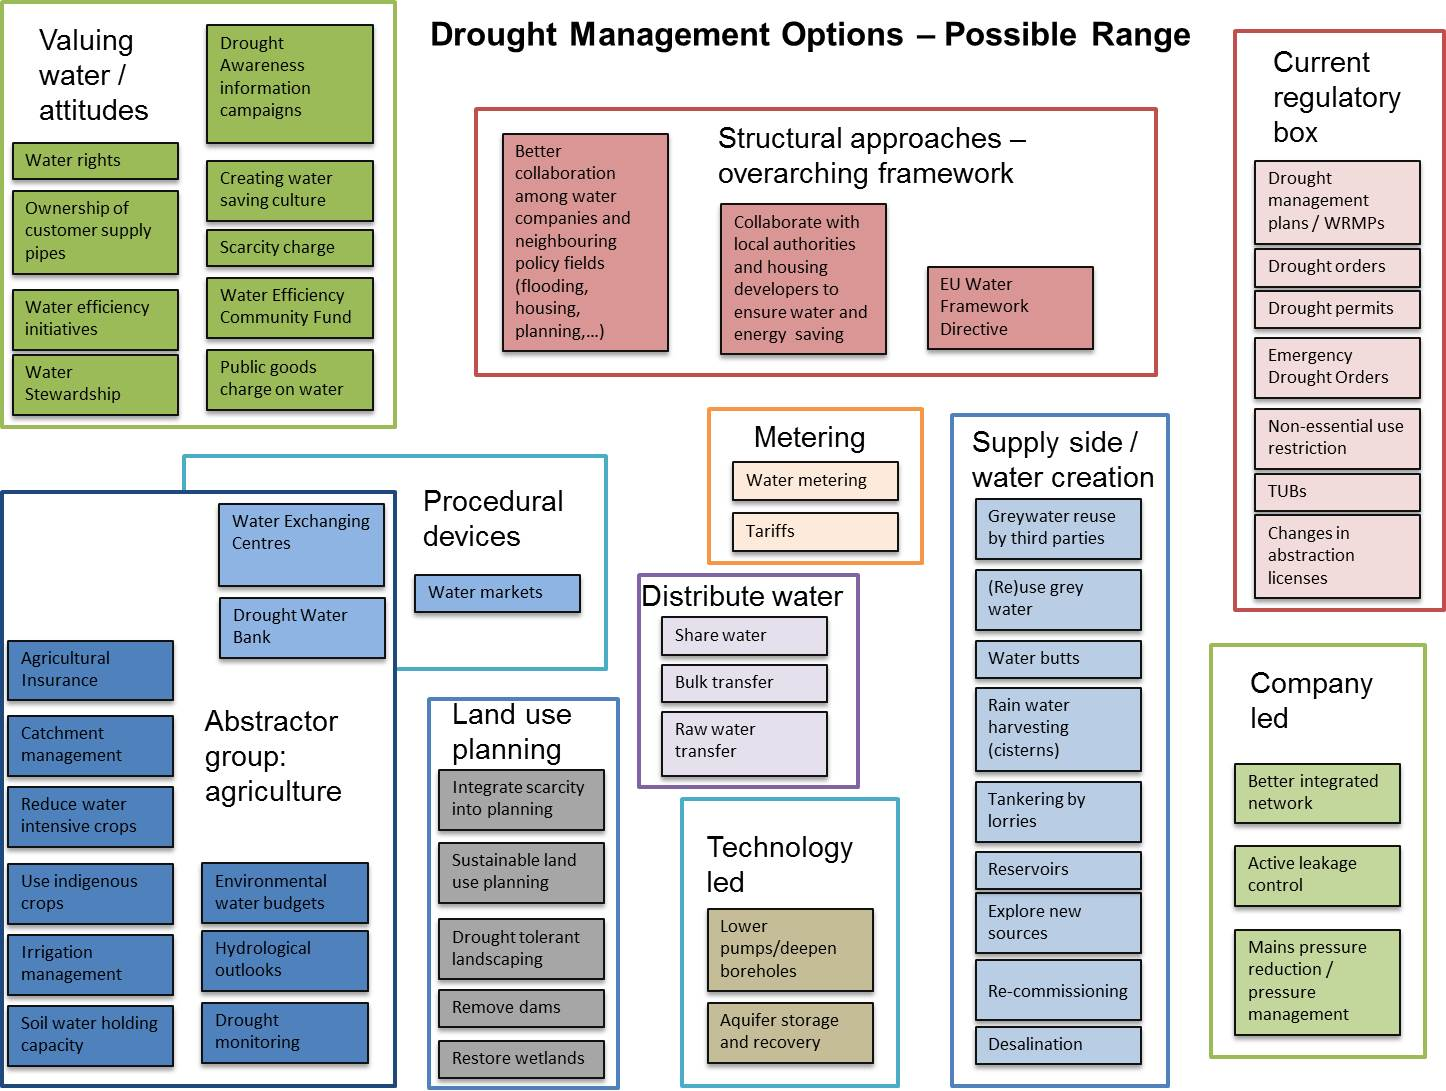 Possible range of drought and water scarcity management options